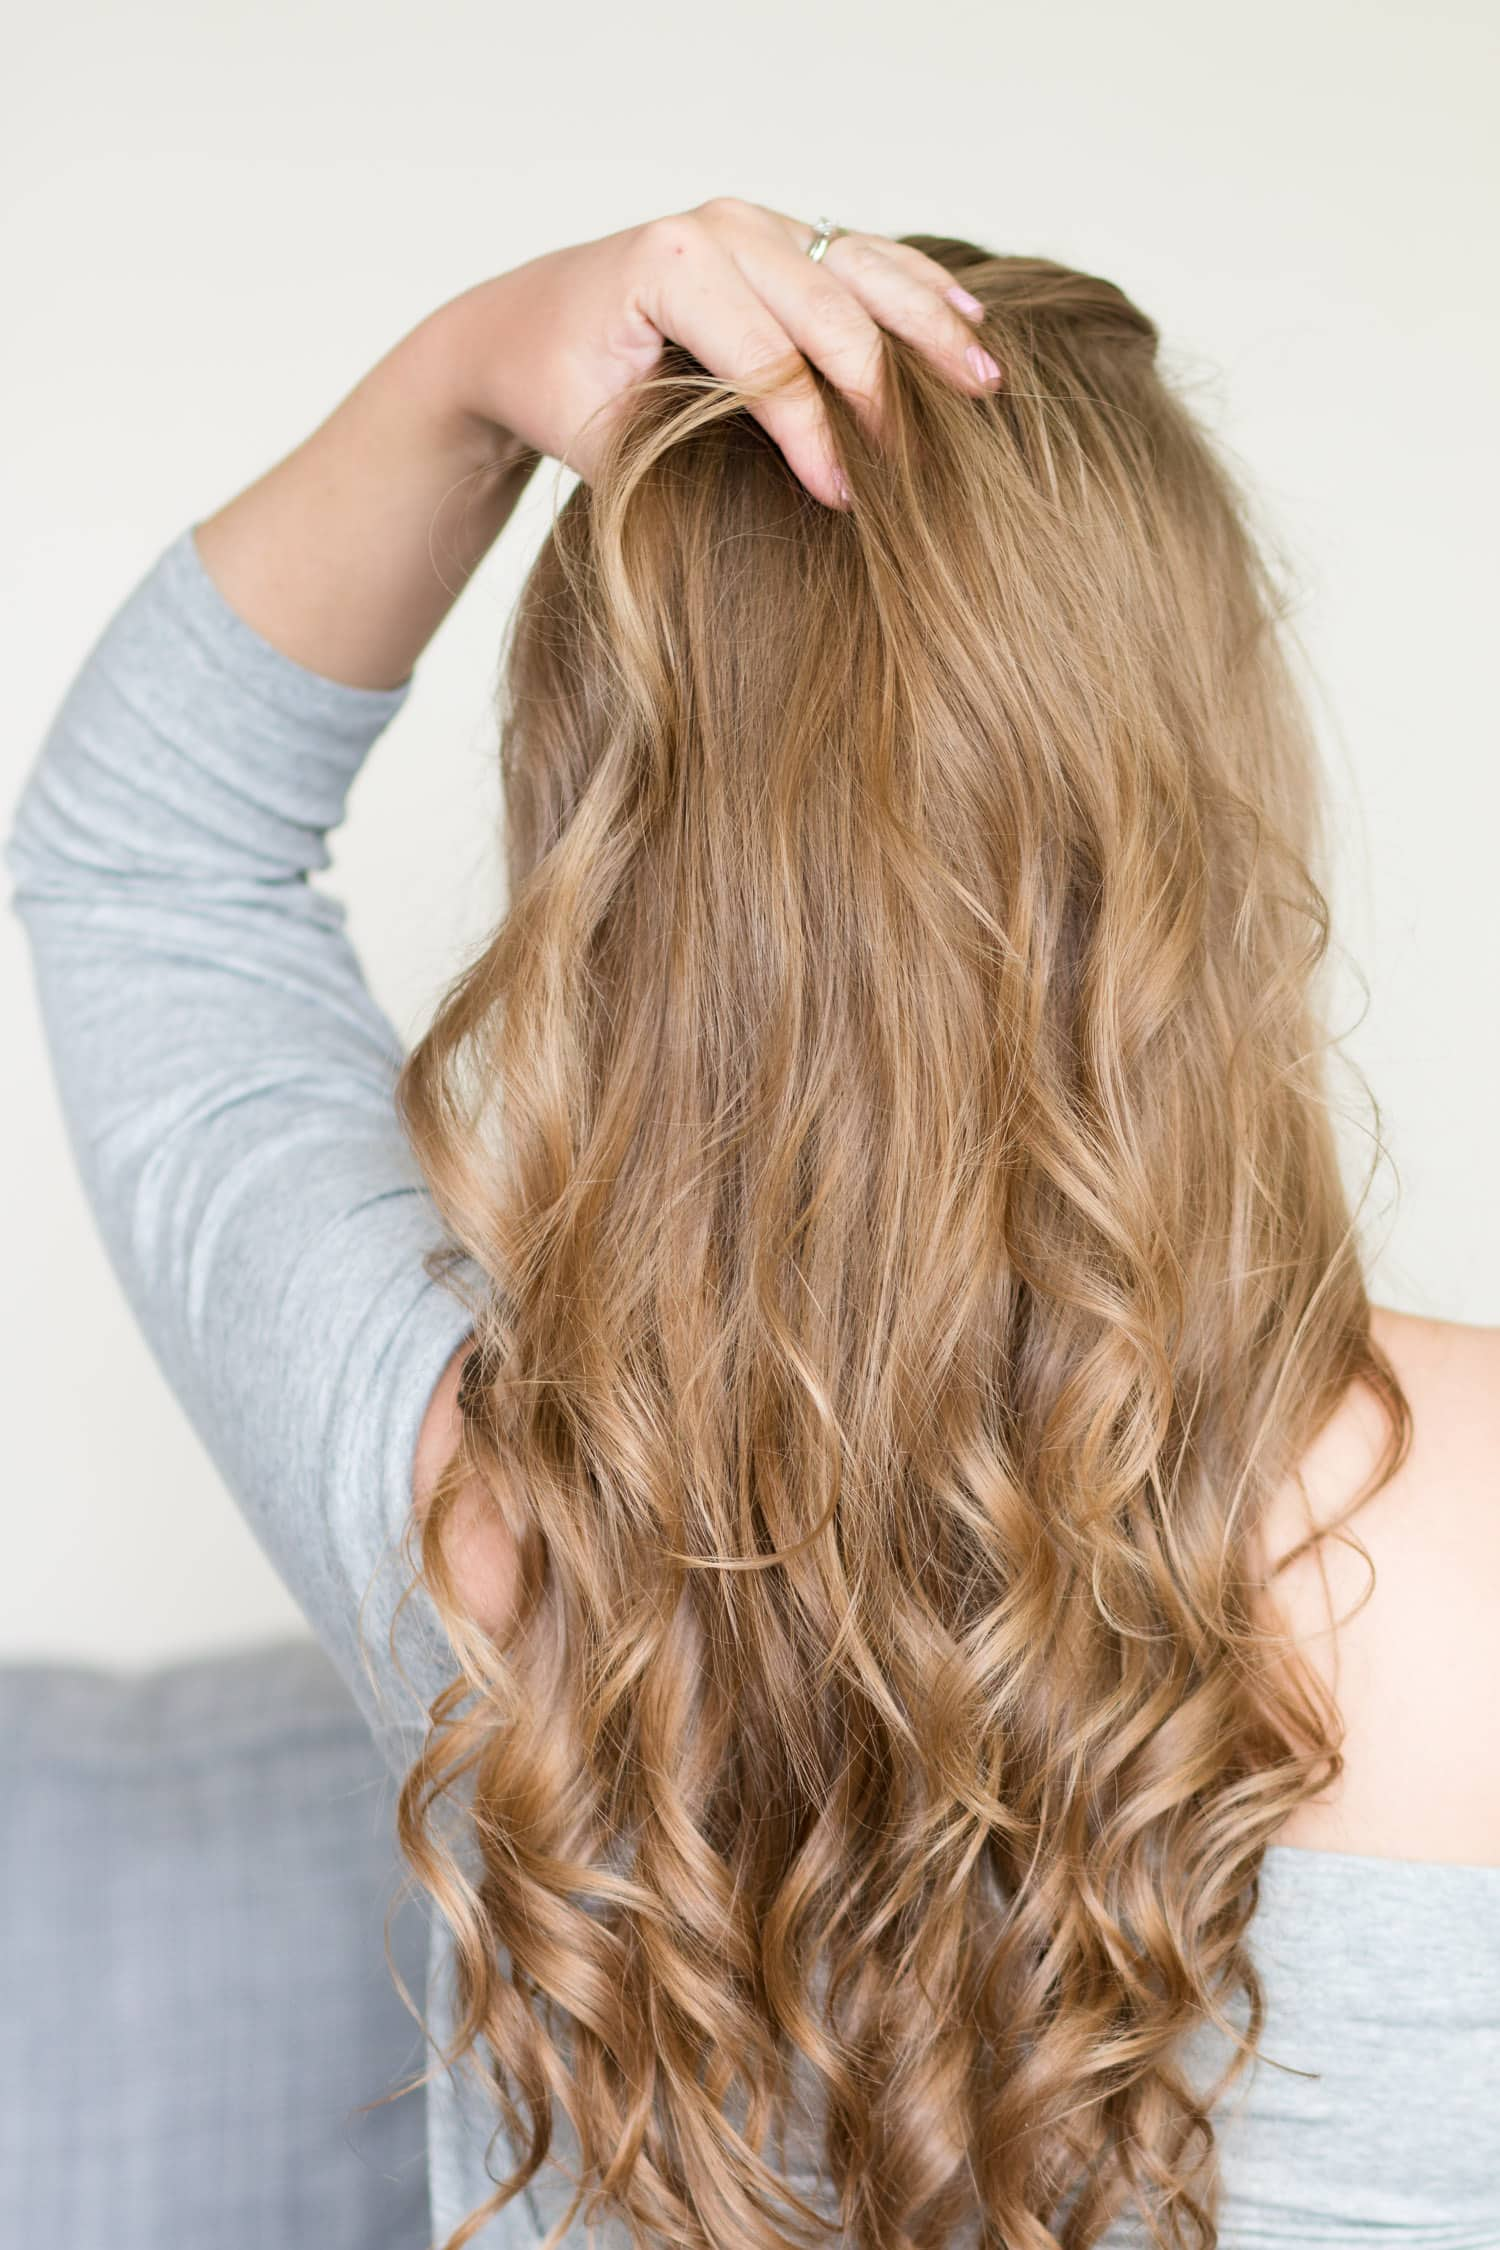 Why You Should Use Sulfate-Free Hair Products